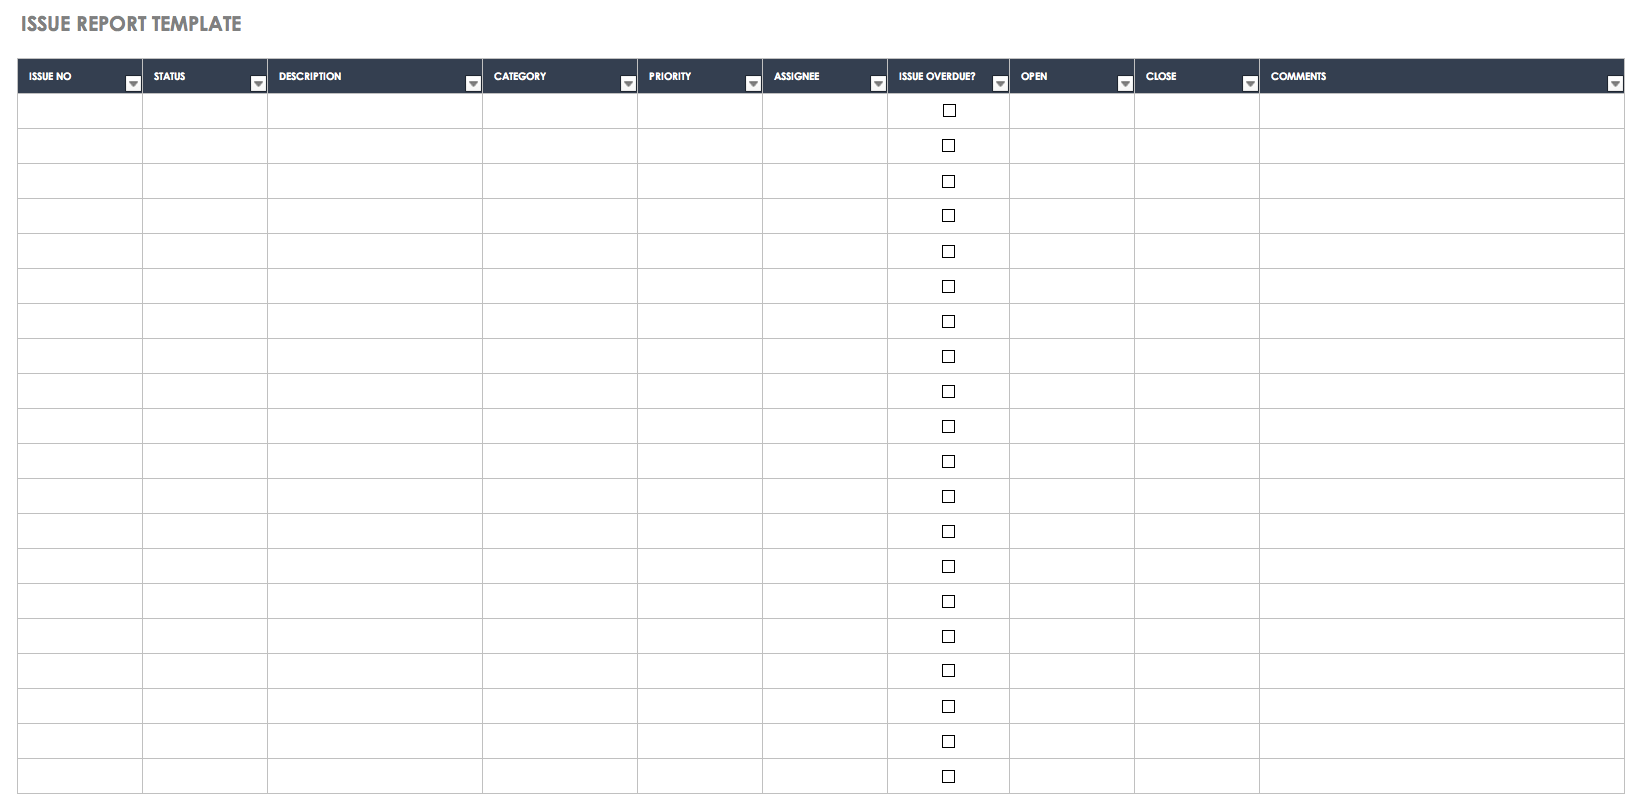 Issue Report Template